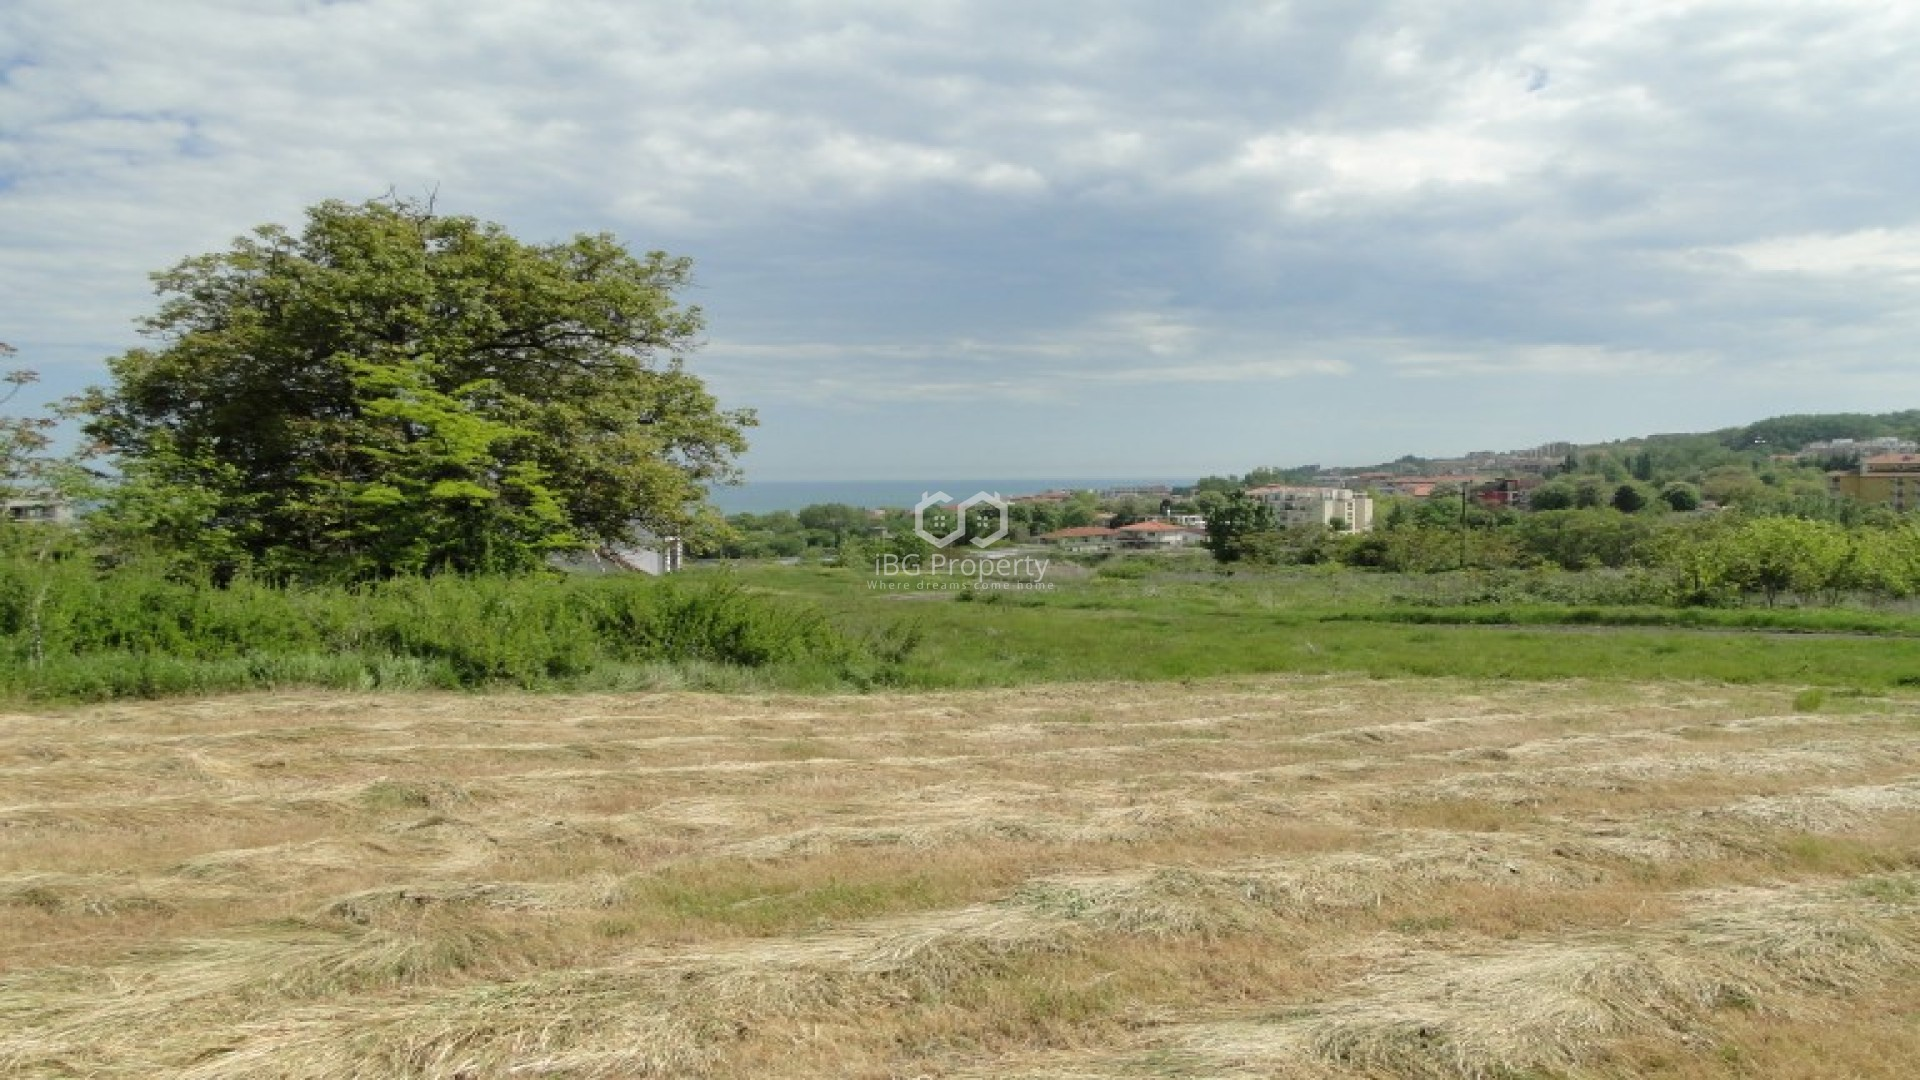 EXCLUSIVE OFFER! Land Byala 1032 m2